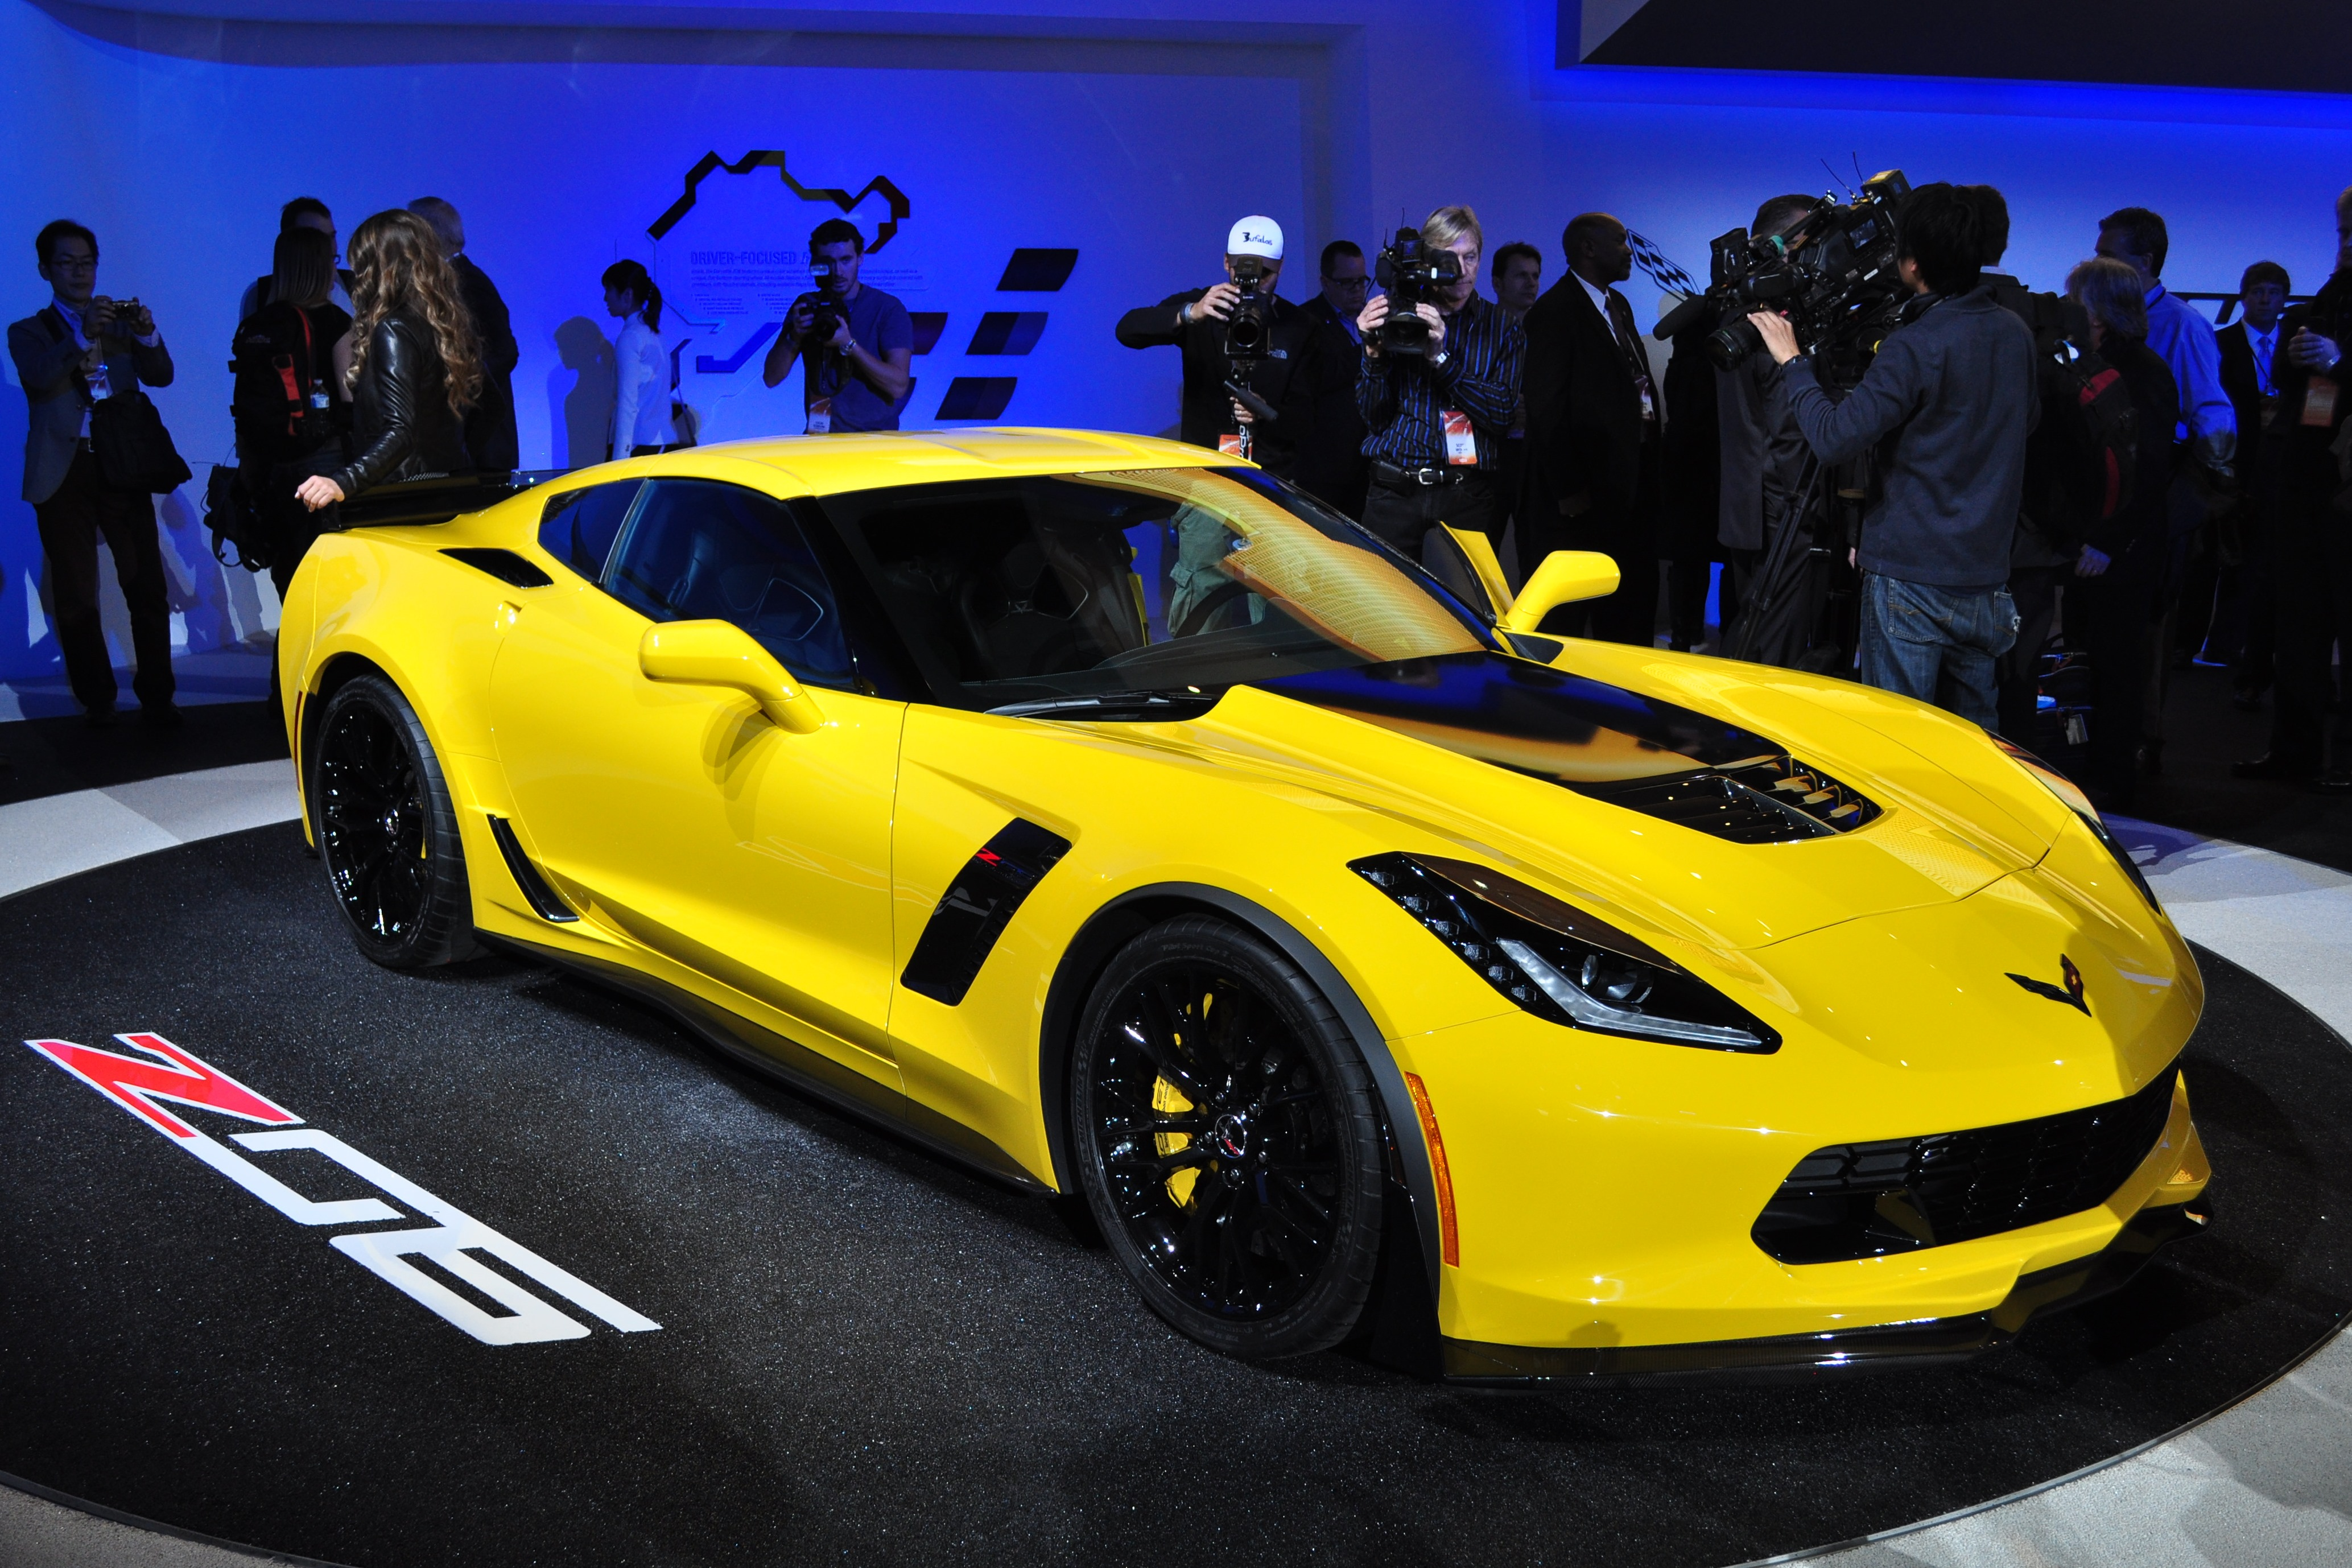 Visual identifiers on the Z06 include fender flares, larger cooling vents, and a big fat hood bump to clear the blower.